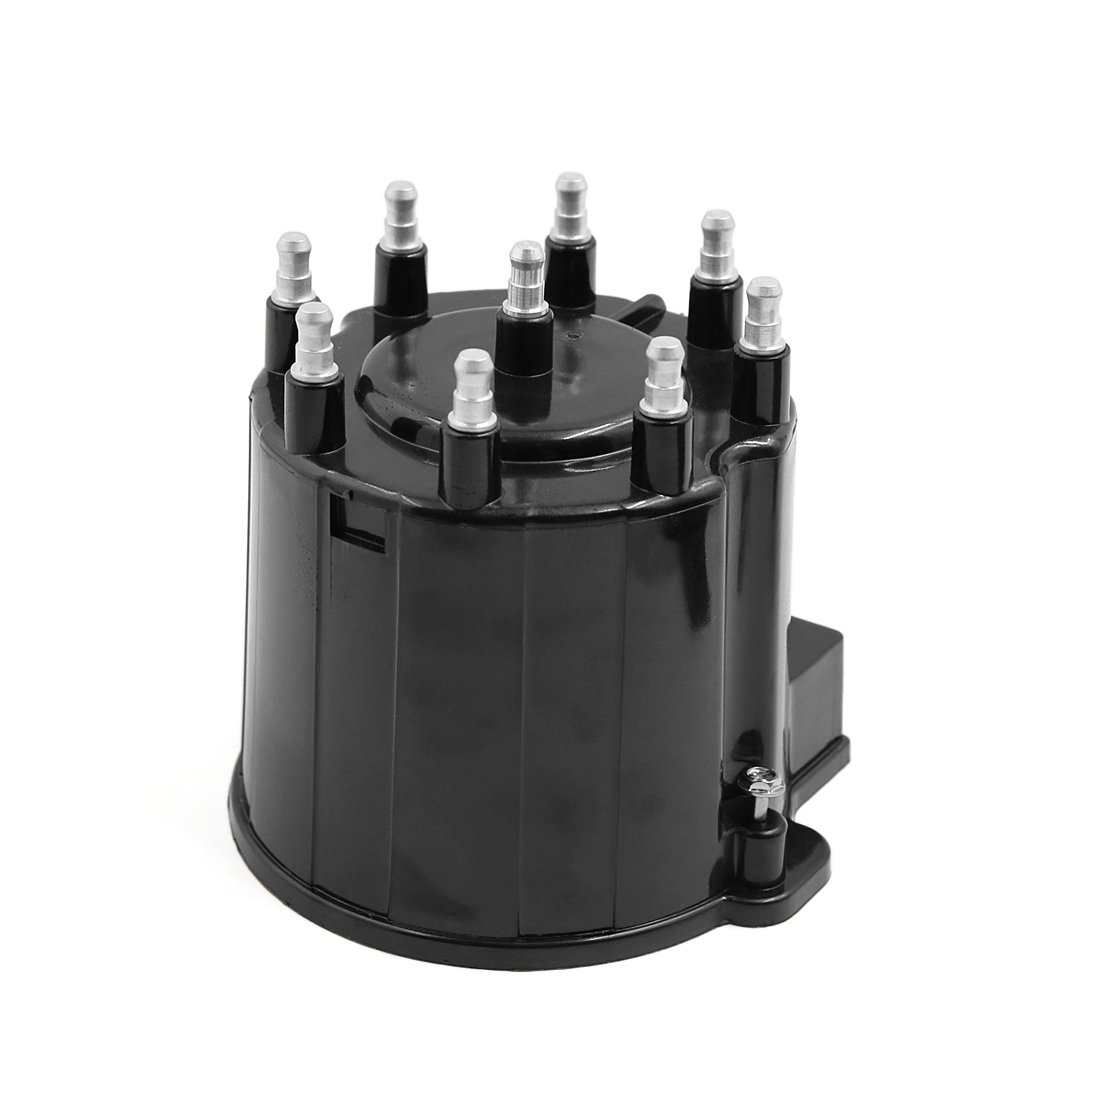 Uxcell a17051500ux1400 Black 19166099 D303A Automobile Car Ignition System Distributor Cap for Chevrolet C1500 C2500 C3500 G10 G20 G30